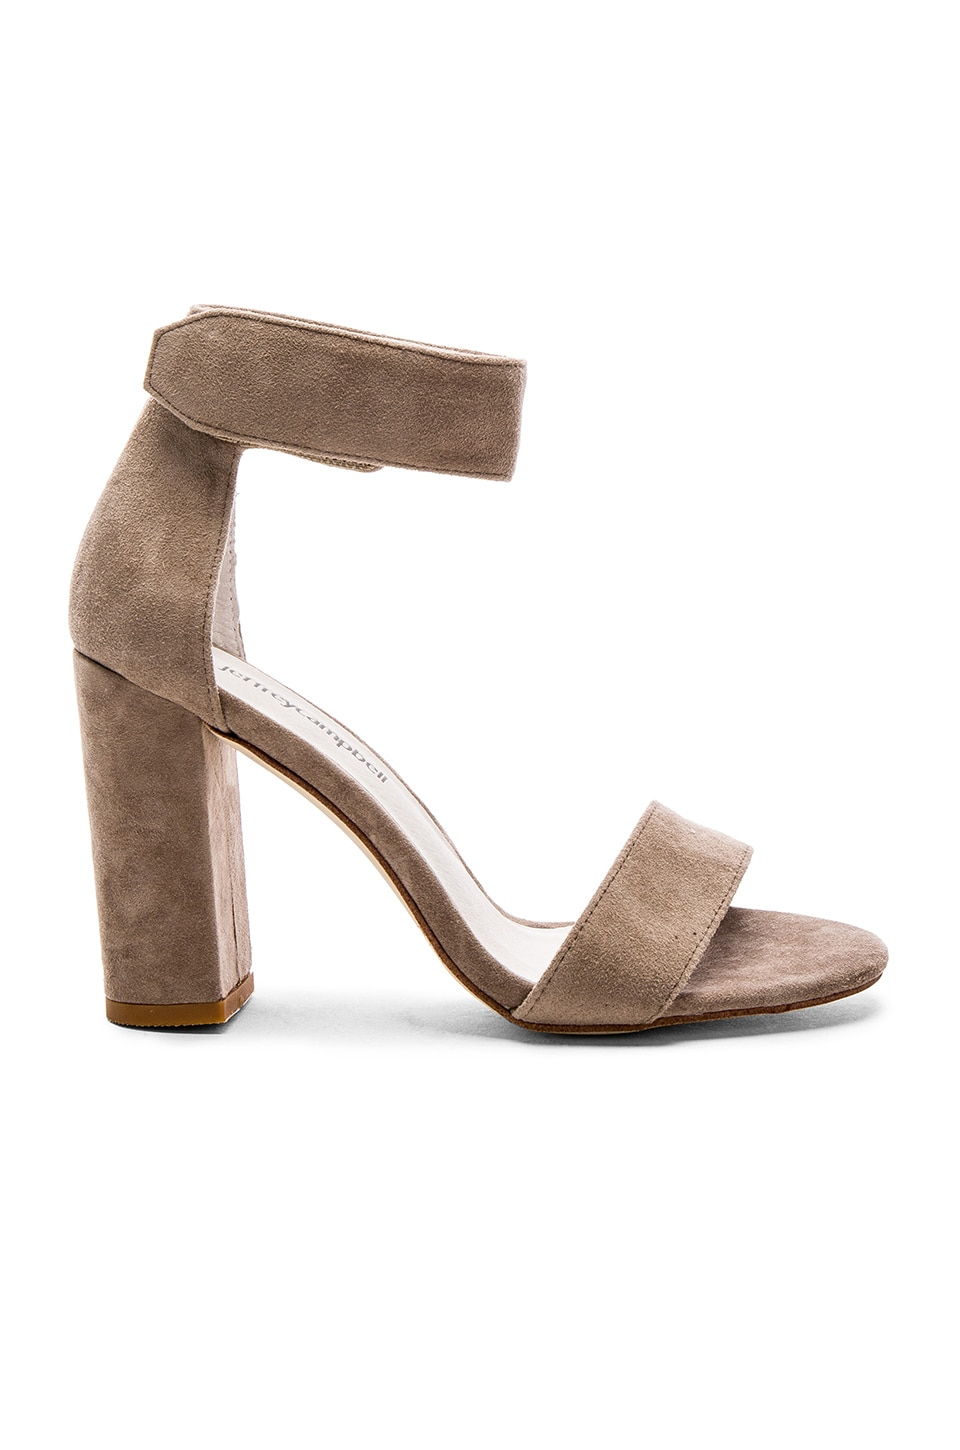 Jeffrey Campbell Lindsay Heels in Taupe Suede